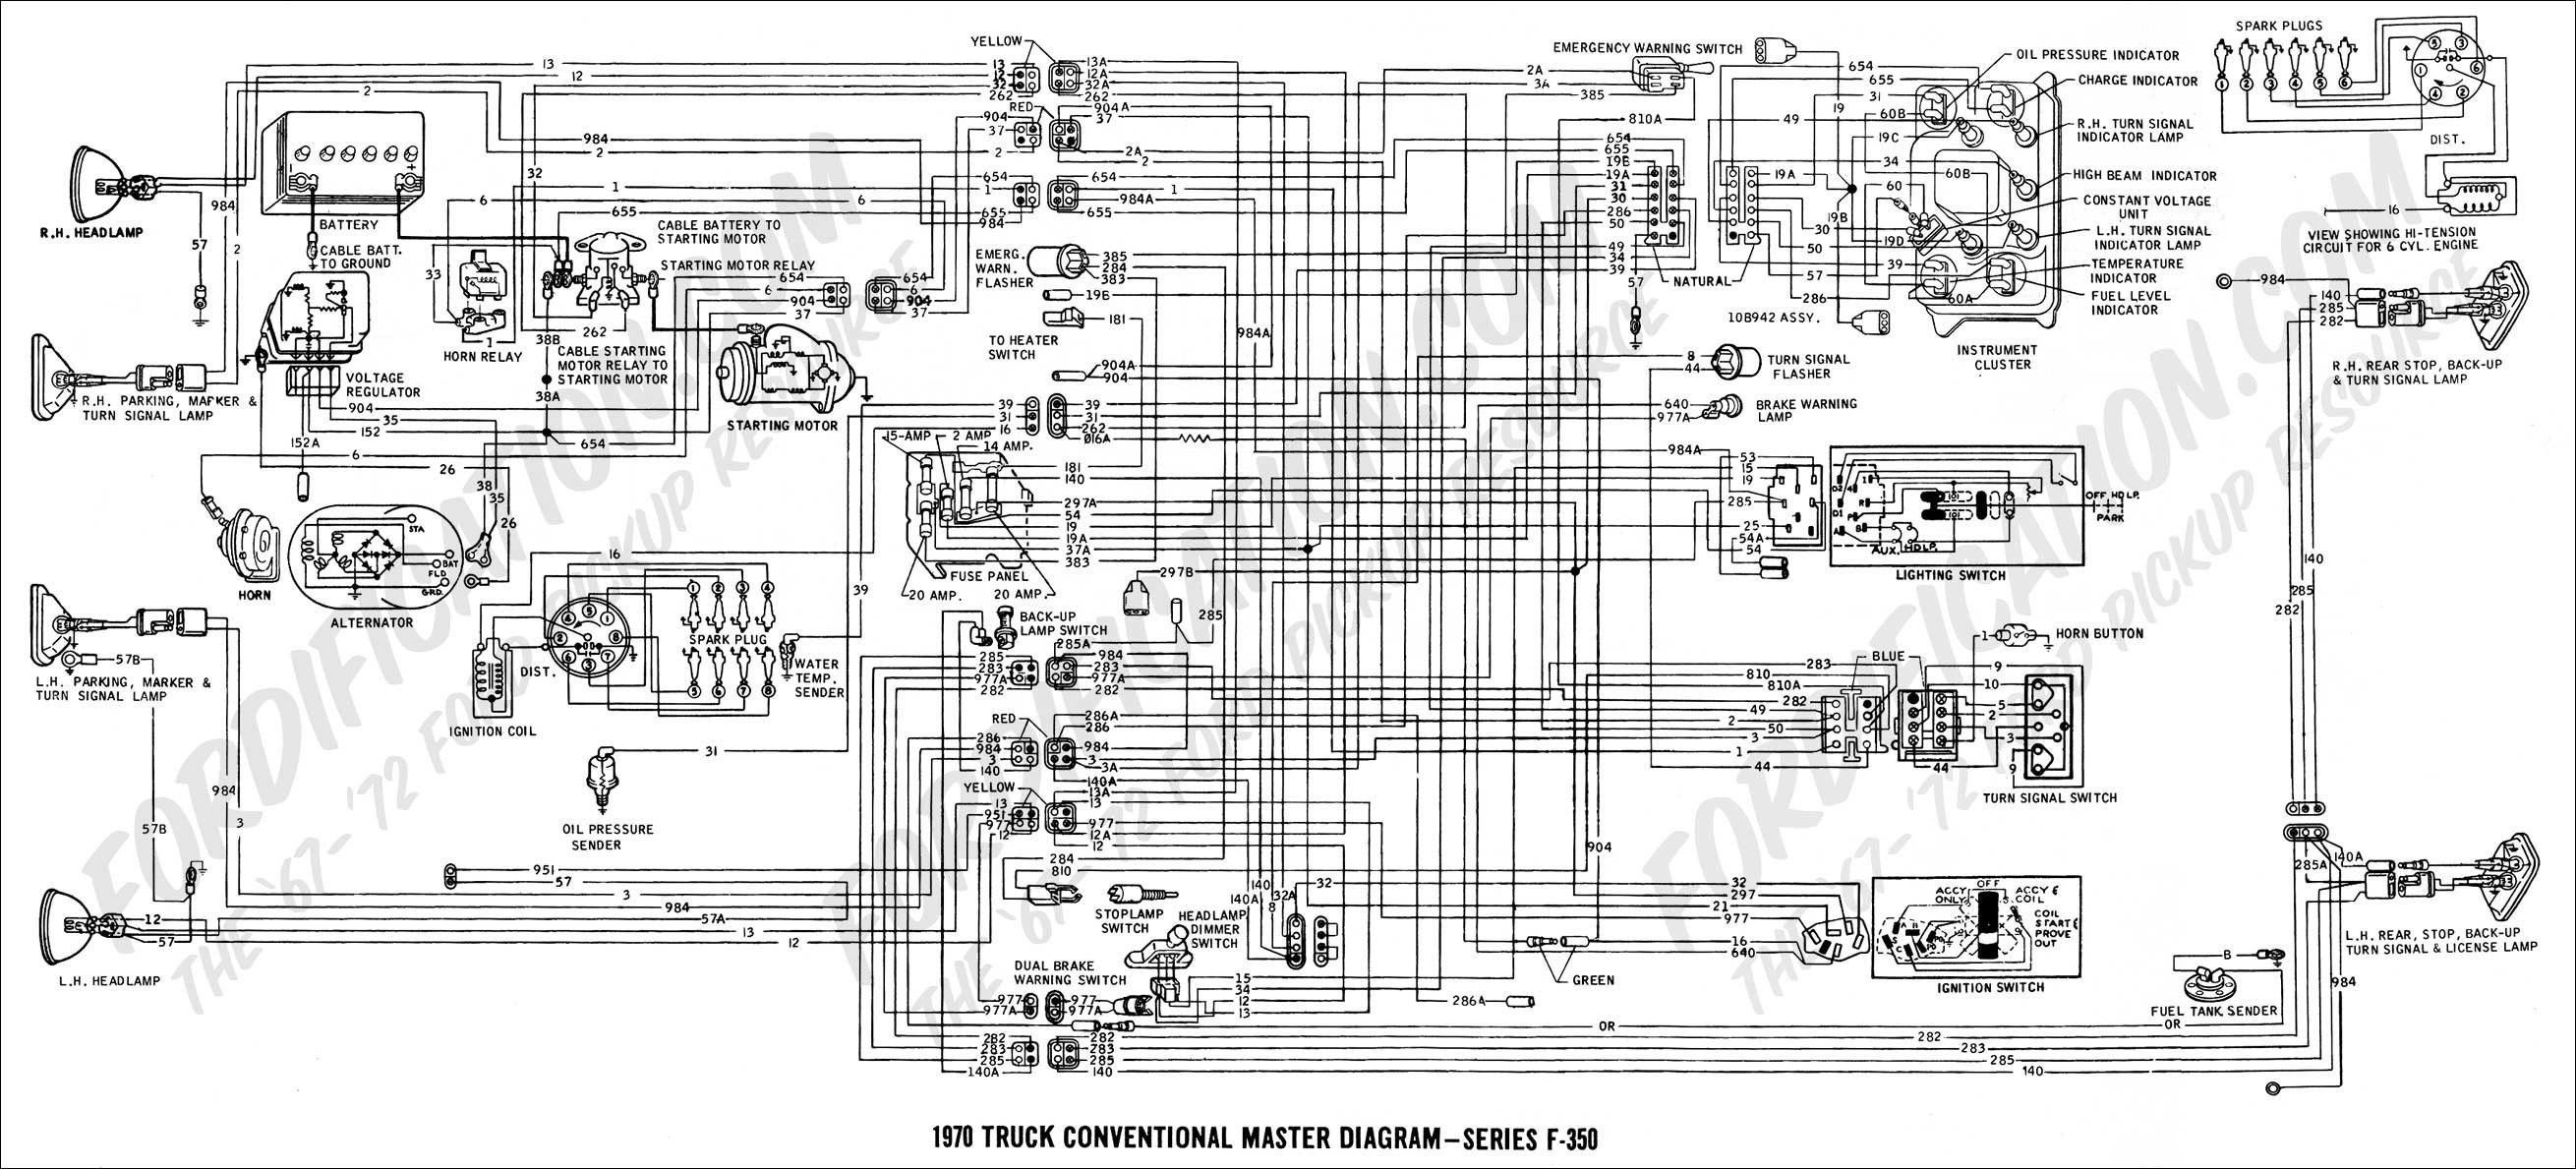 Ford F 250 Schematics Wiring Diagram Knowledge A Knowledge A Lechicchedimammavale It